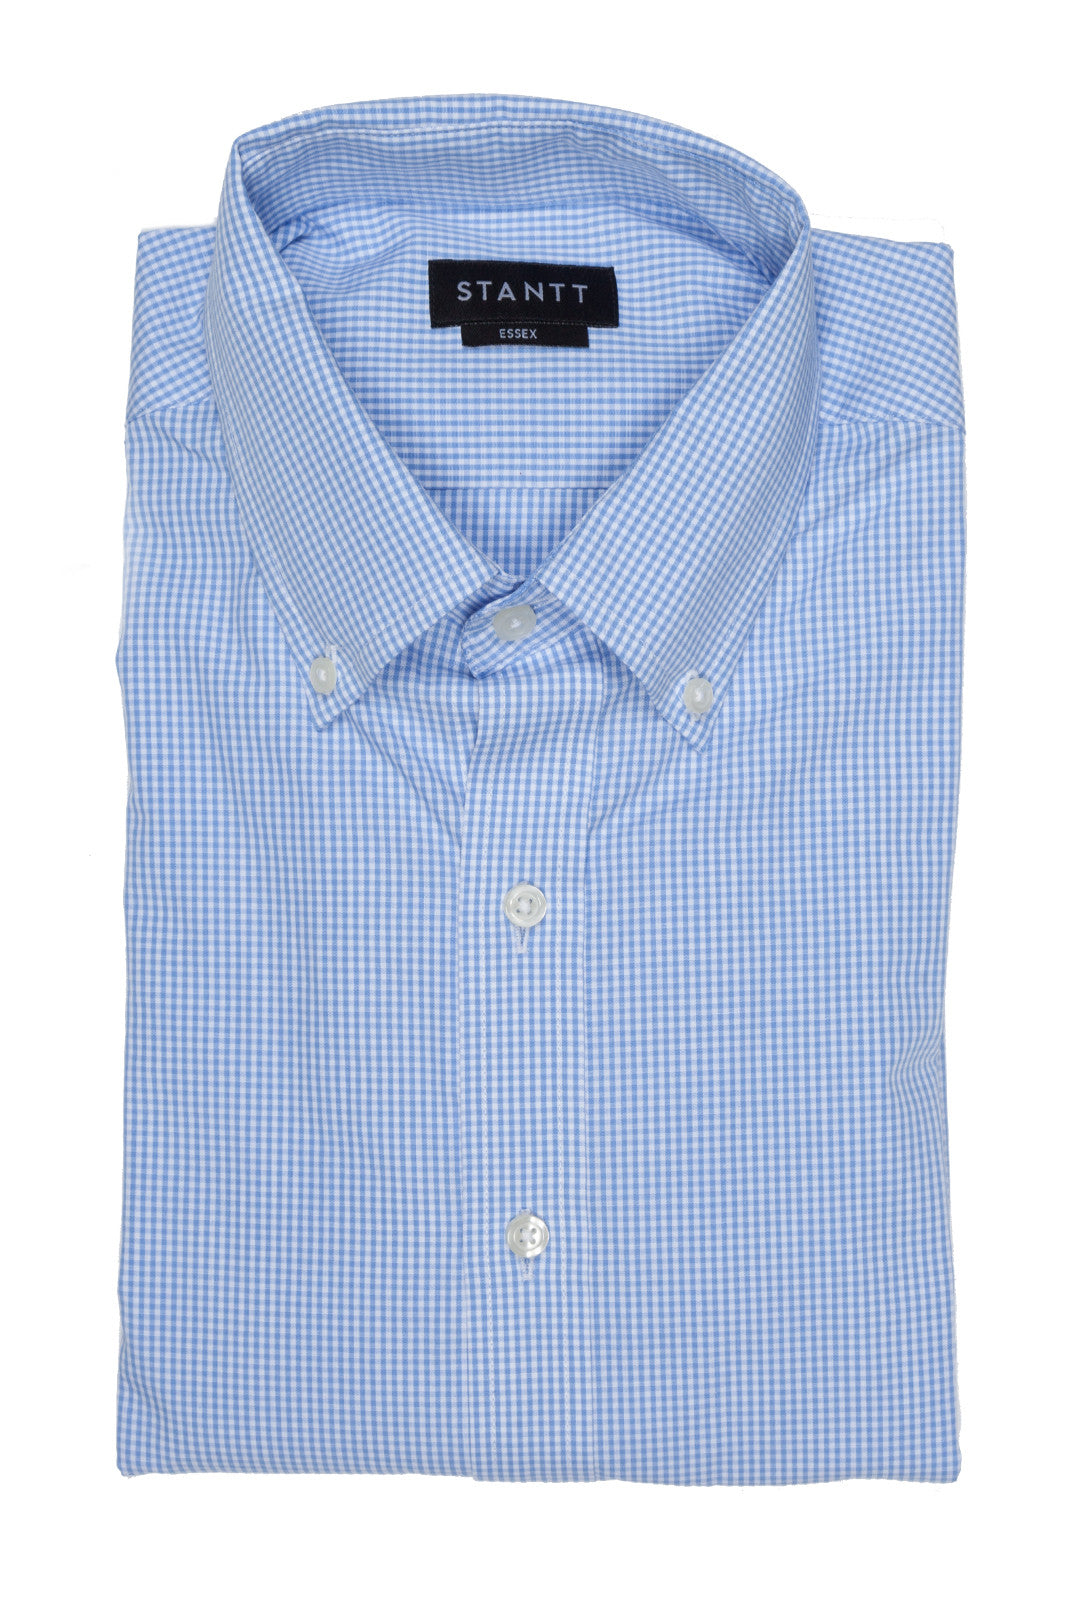 Sky Blue Micro Check: Cutaway Collar, Barrel Cuff